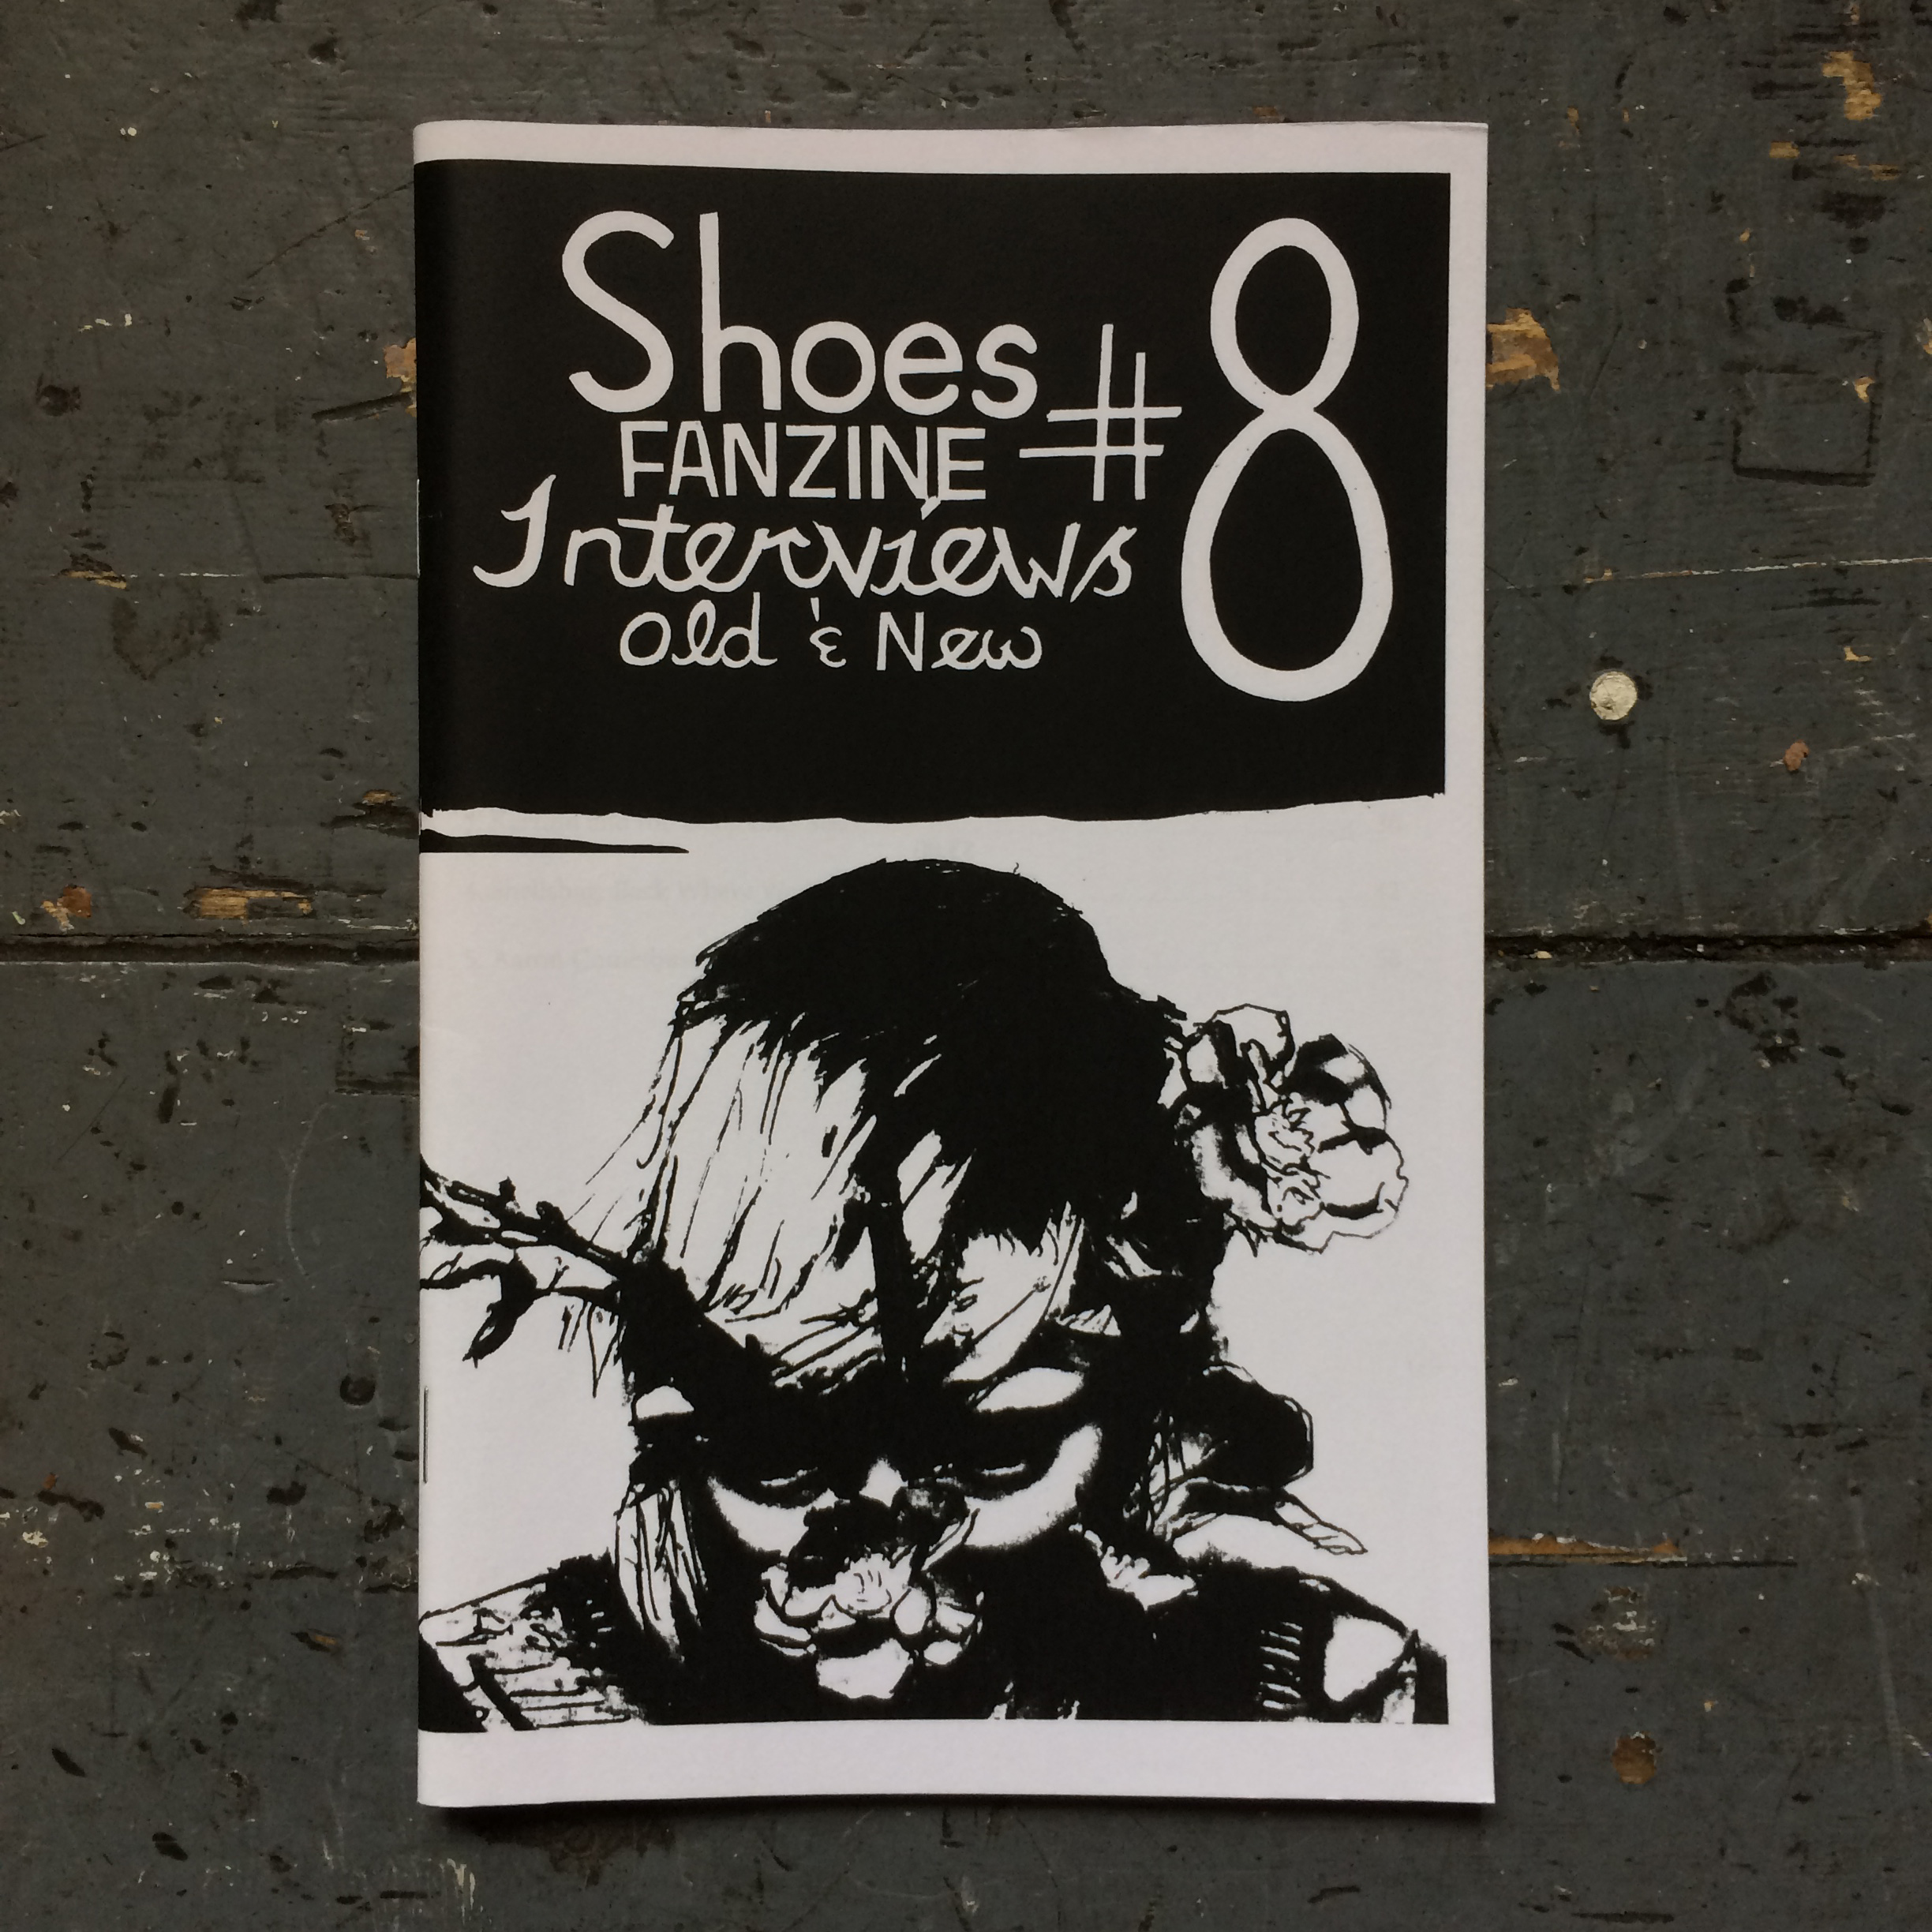 Shoes Fanzine #8: Interviews Old & New